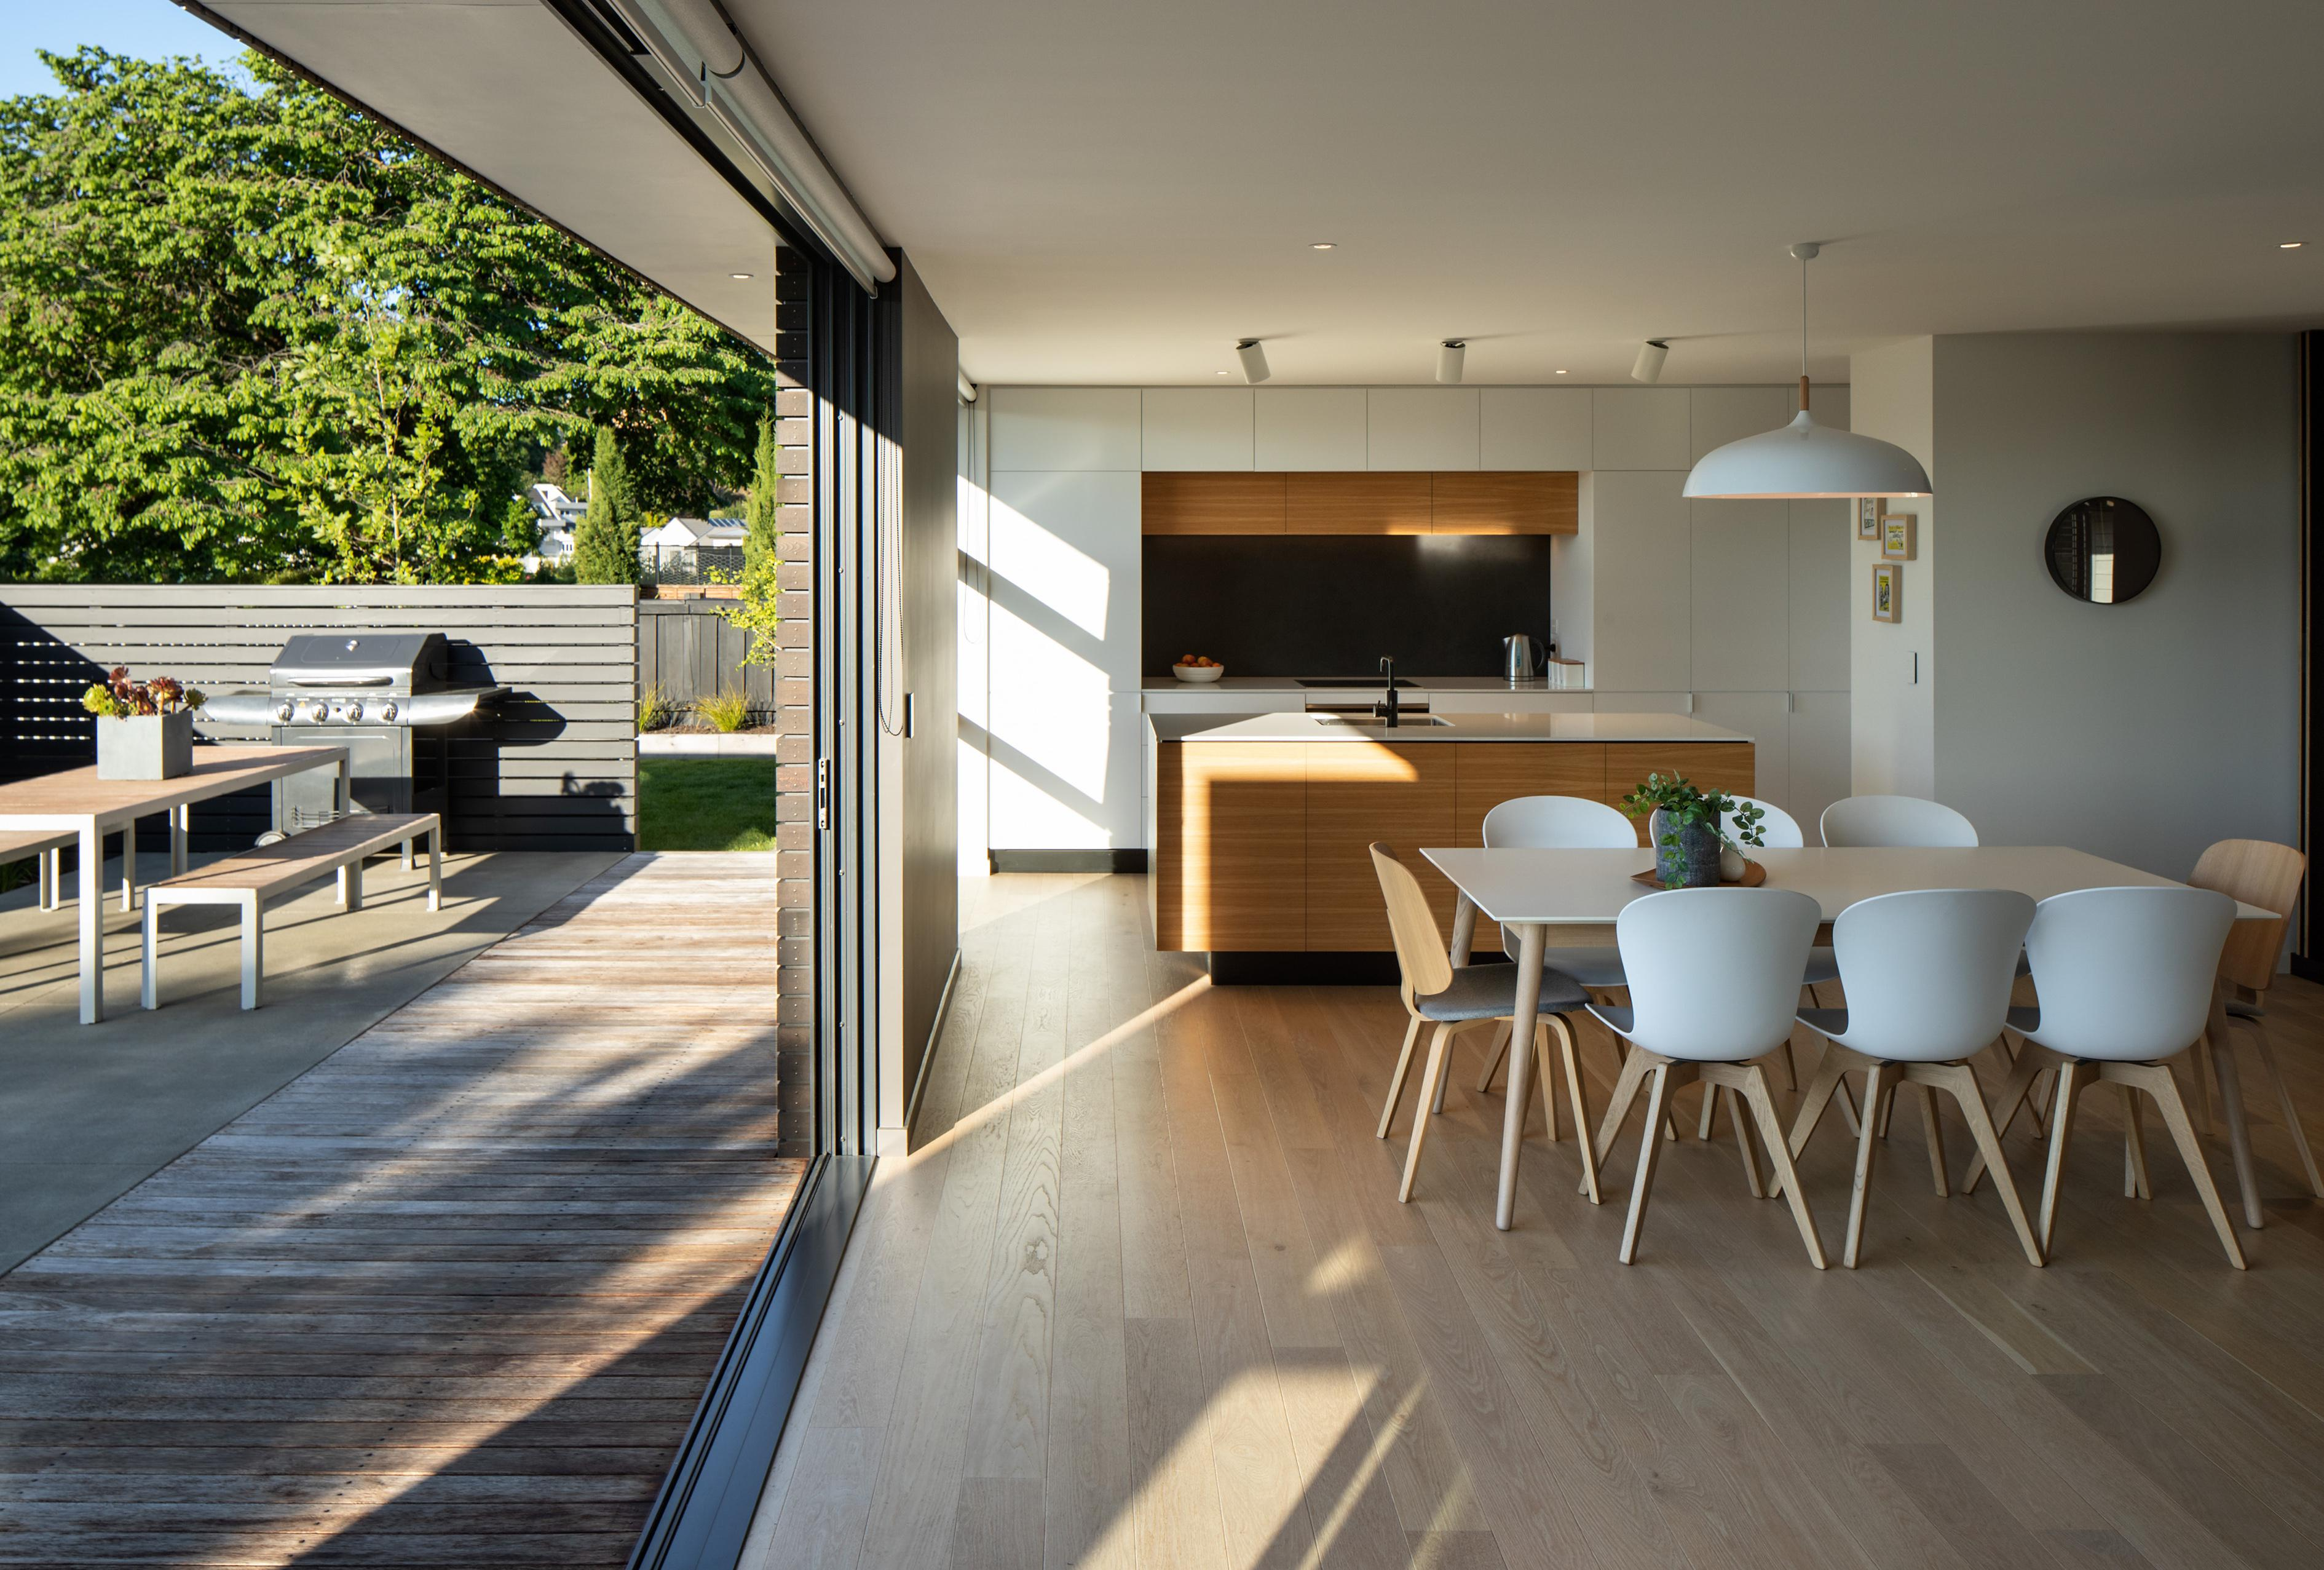 Interior of the kitchen and dining area, with sliding door opened to an outdoor living area with seating and barbecue